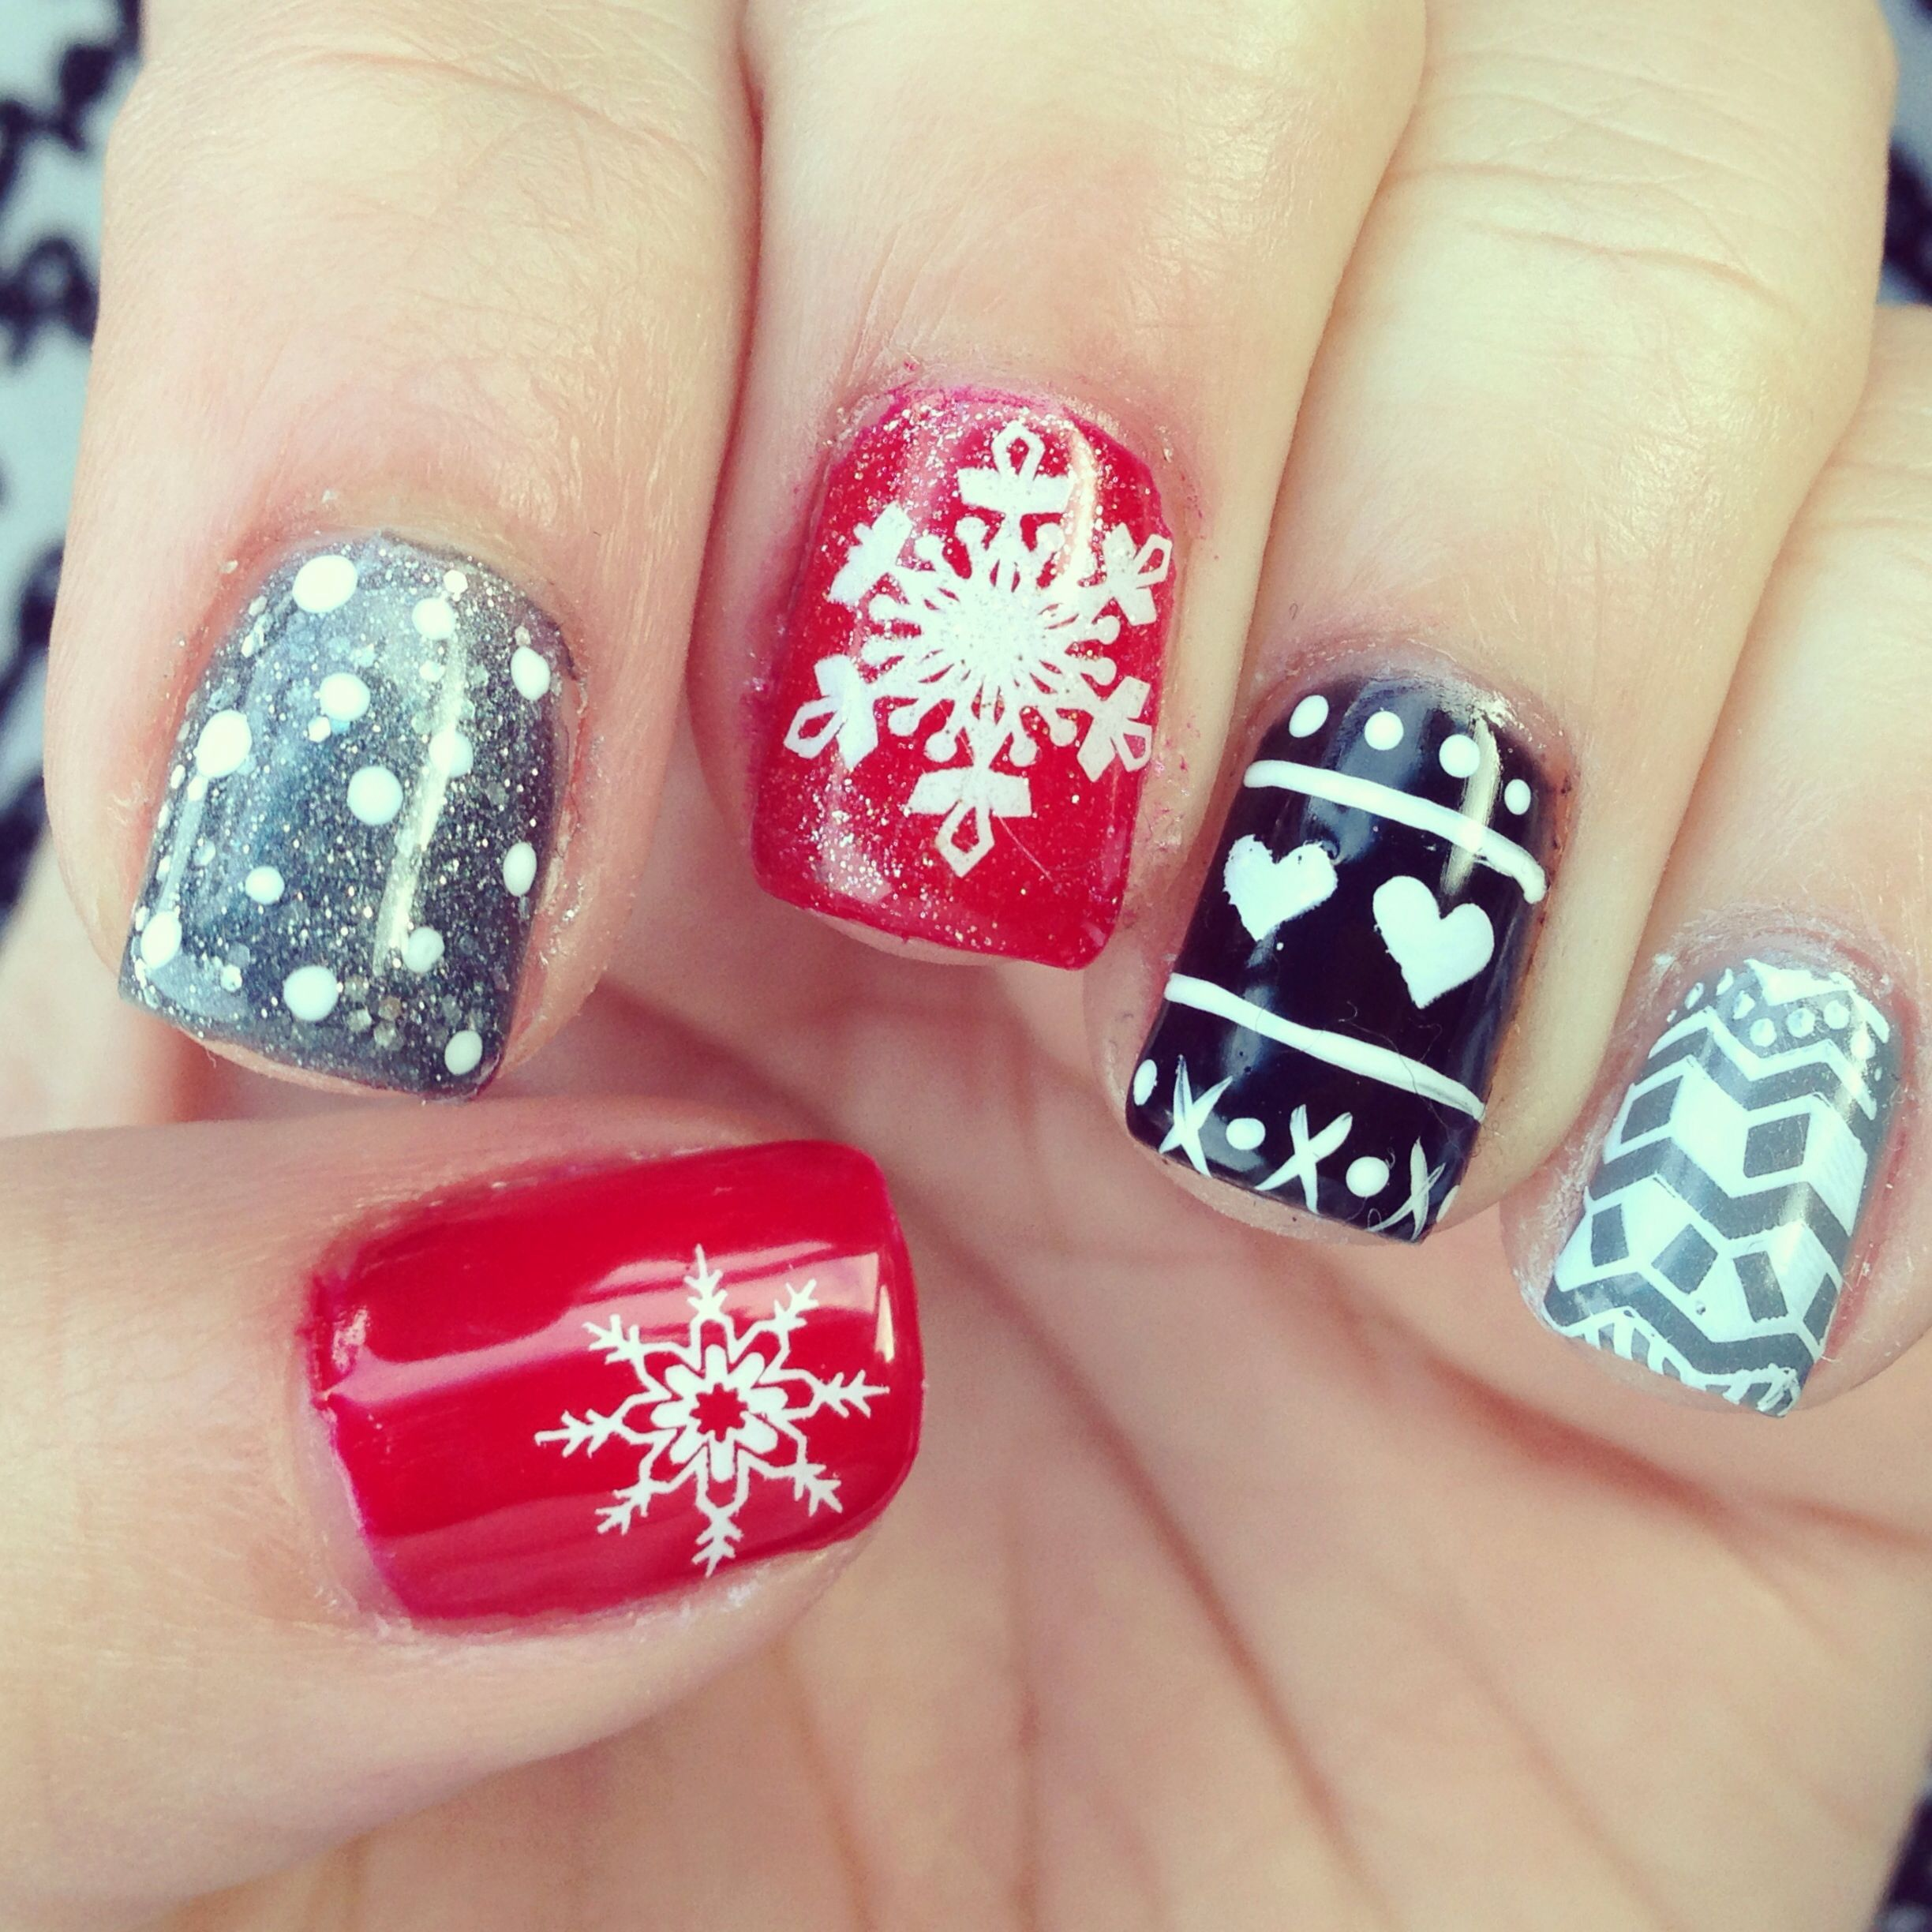 Christmas Nails Shellac: Winter Sweater Shellac Nails! My Nail Tech Is The Greatest